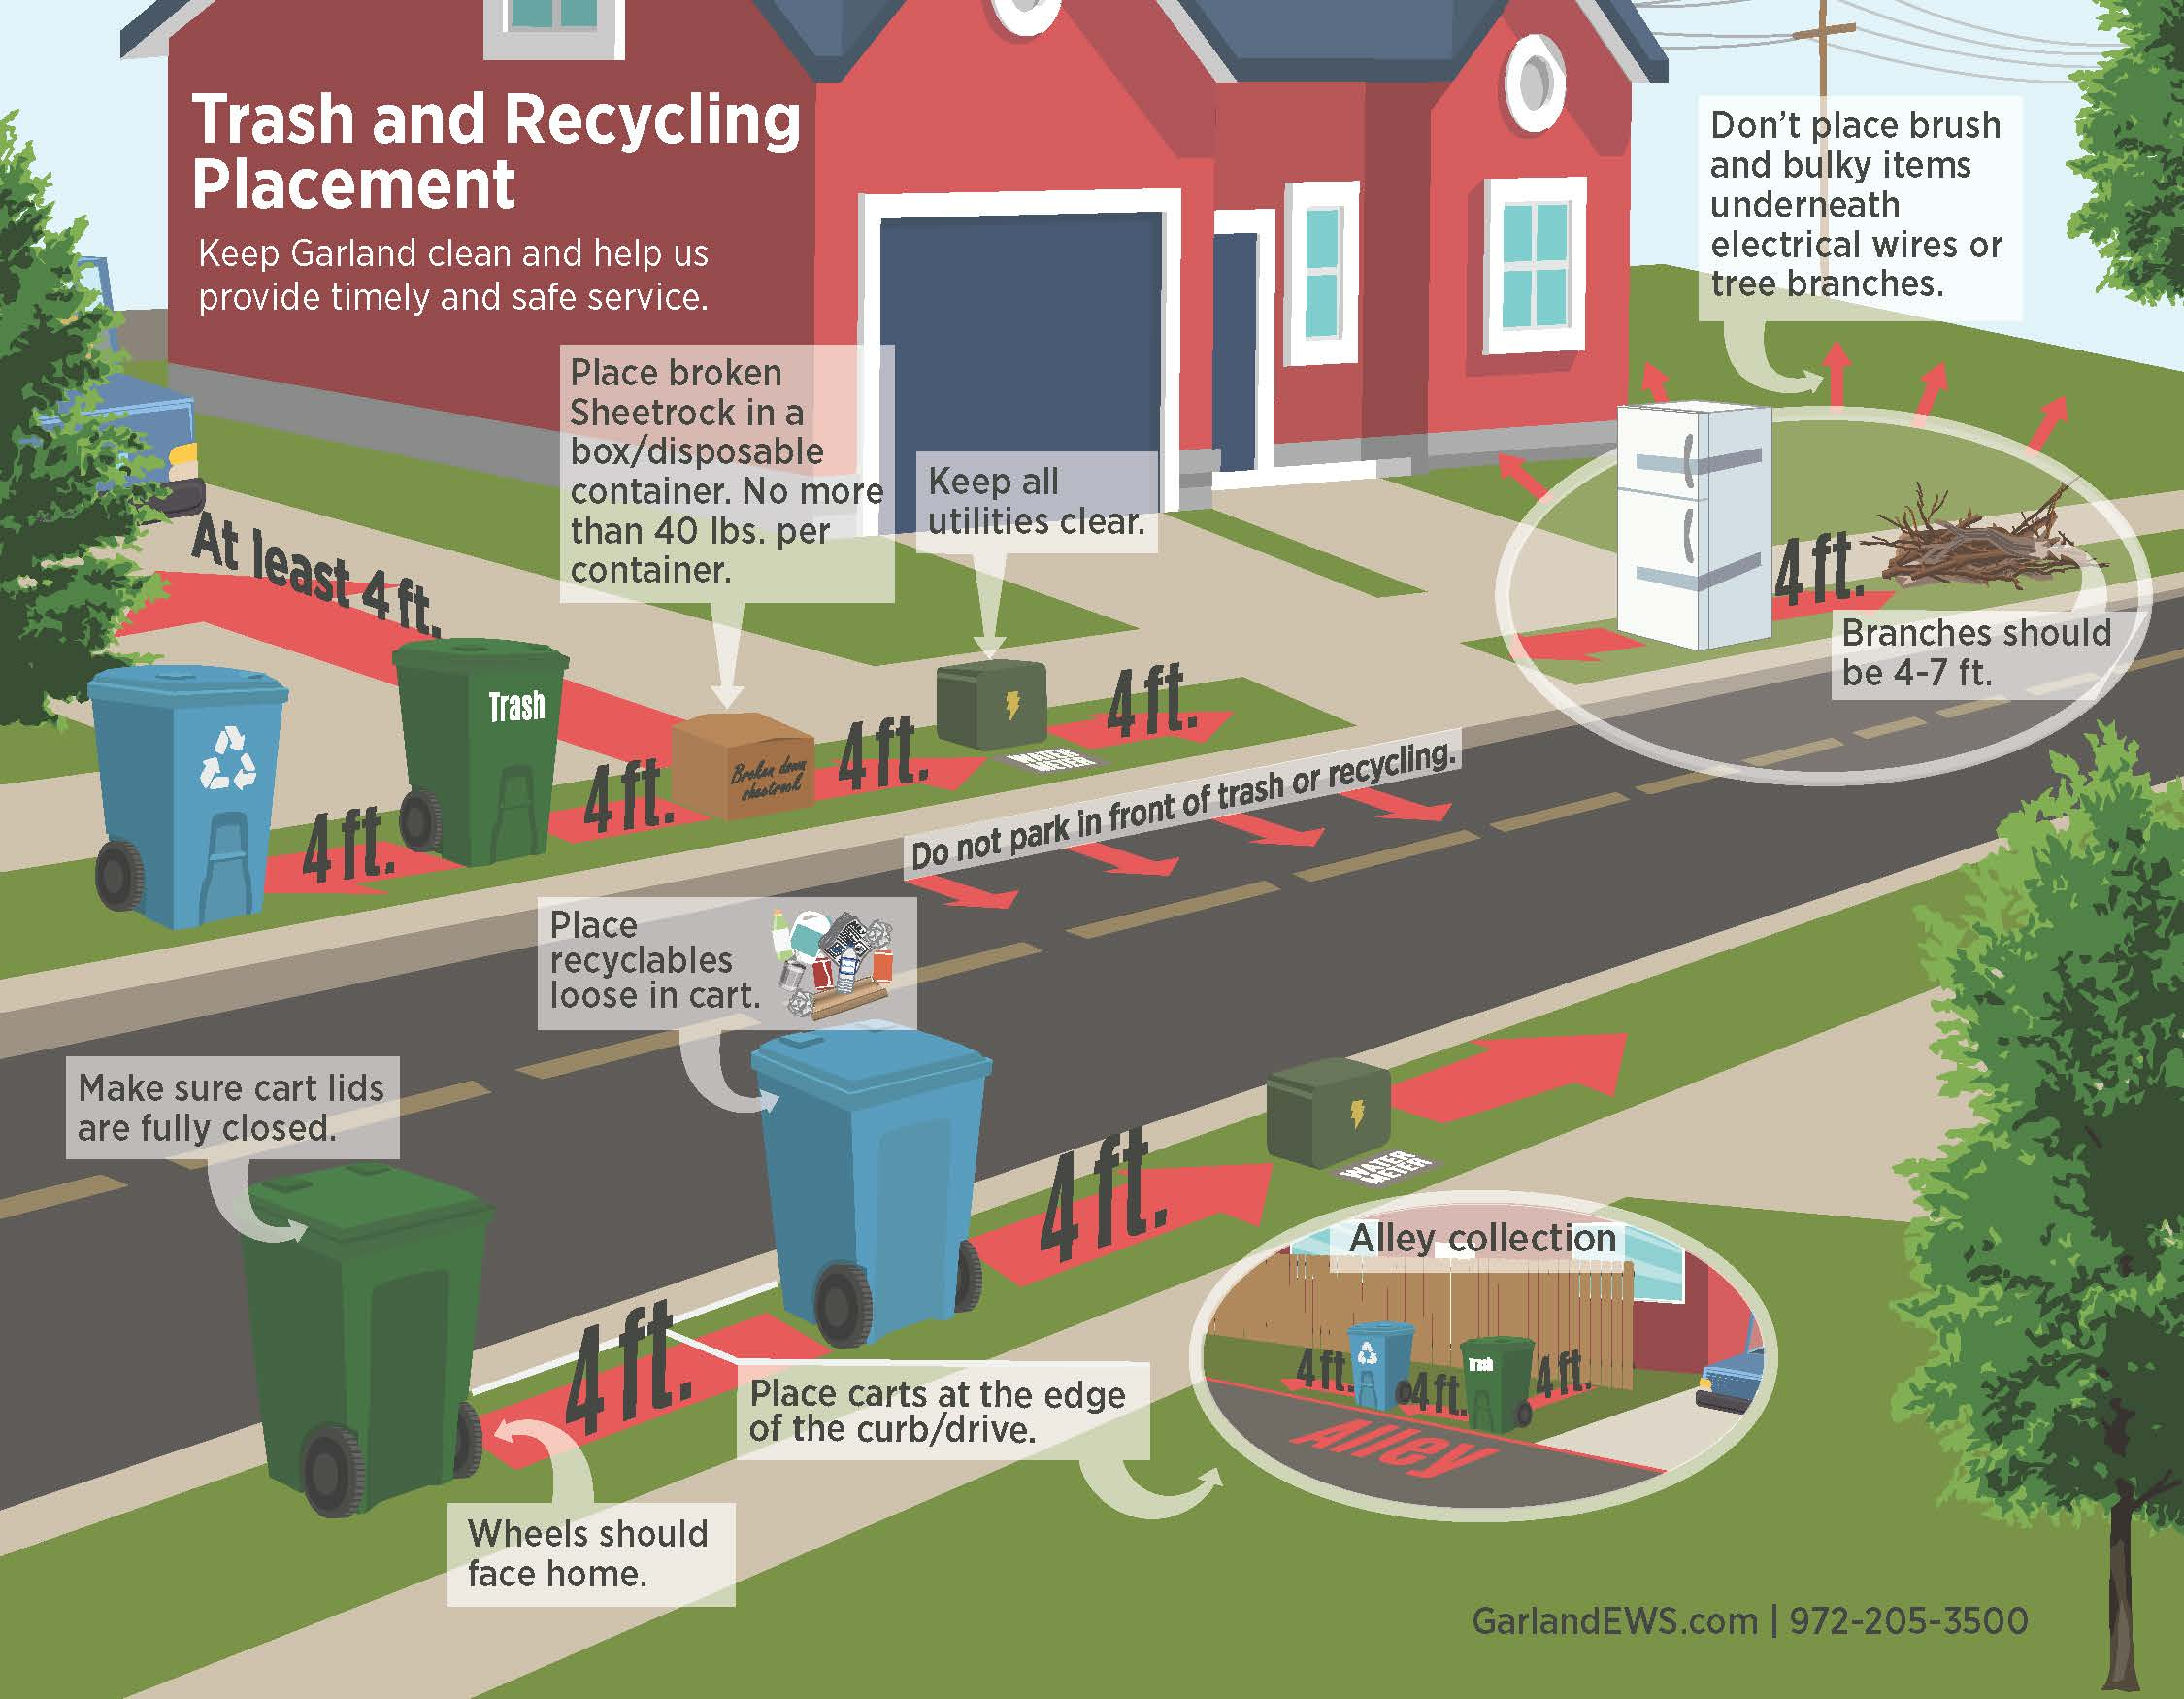 Image depicting proper trash, brush and bulky, and recycling placement.